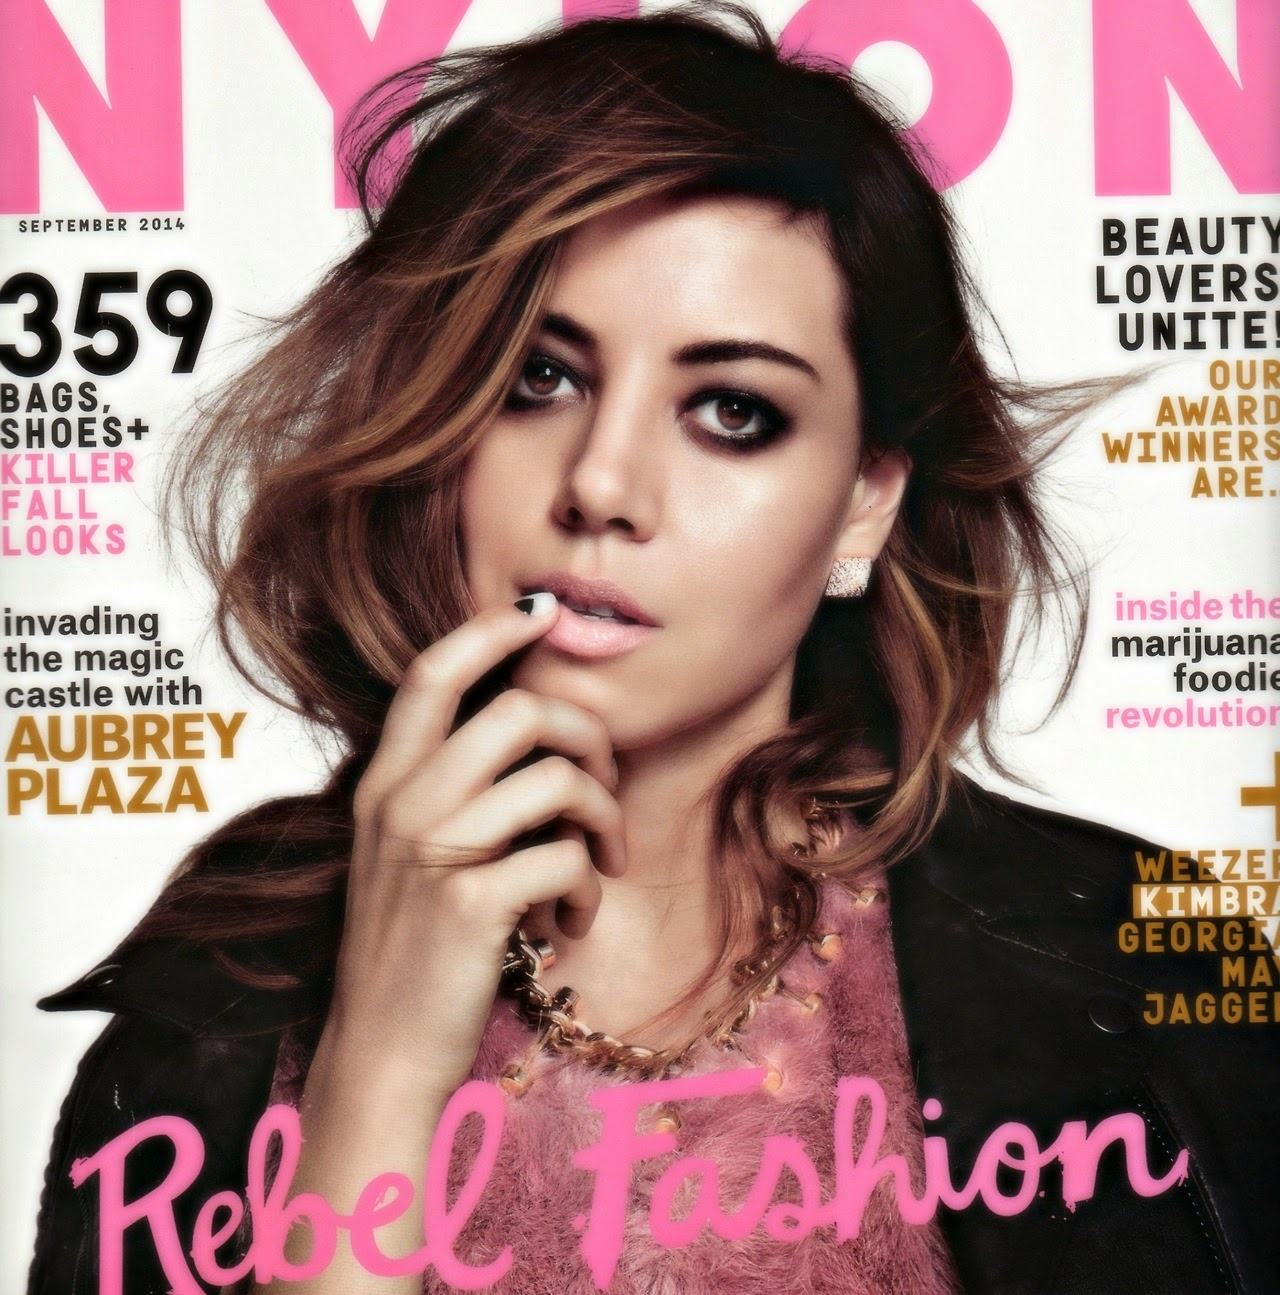 Aubrey Plaza - Nylon Magazine, September 2014 0